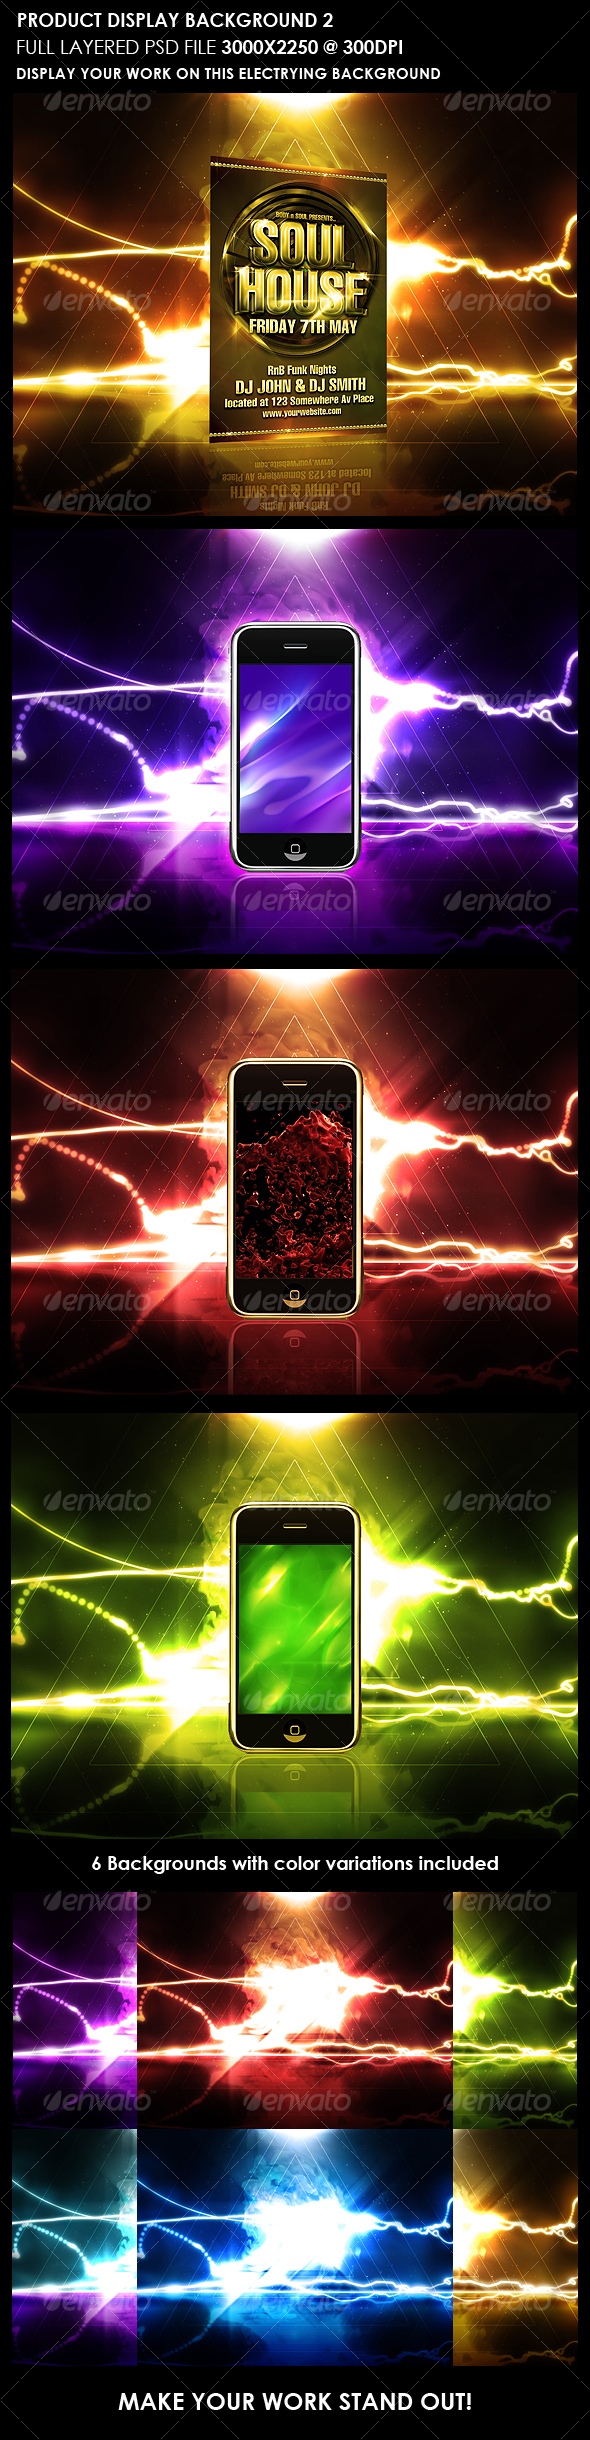 Product Display Background 2 - Backgrounds Graphics